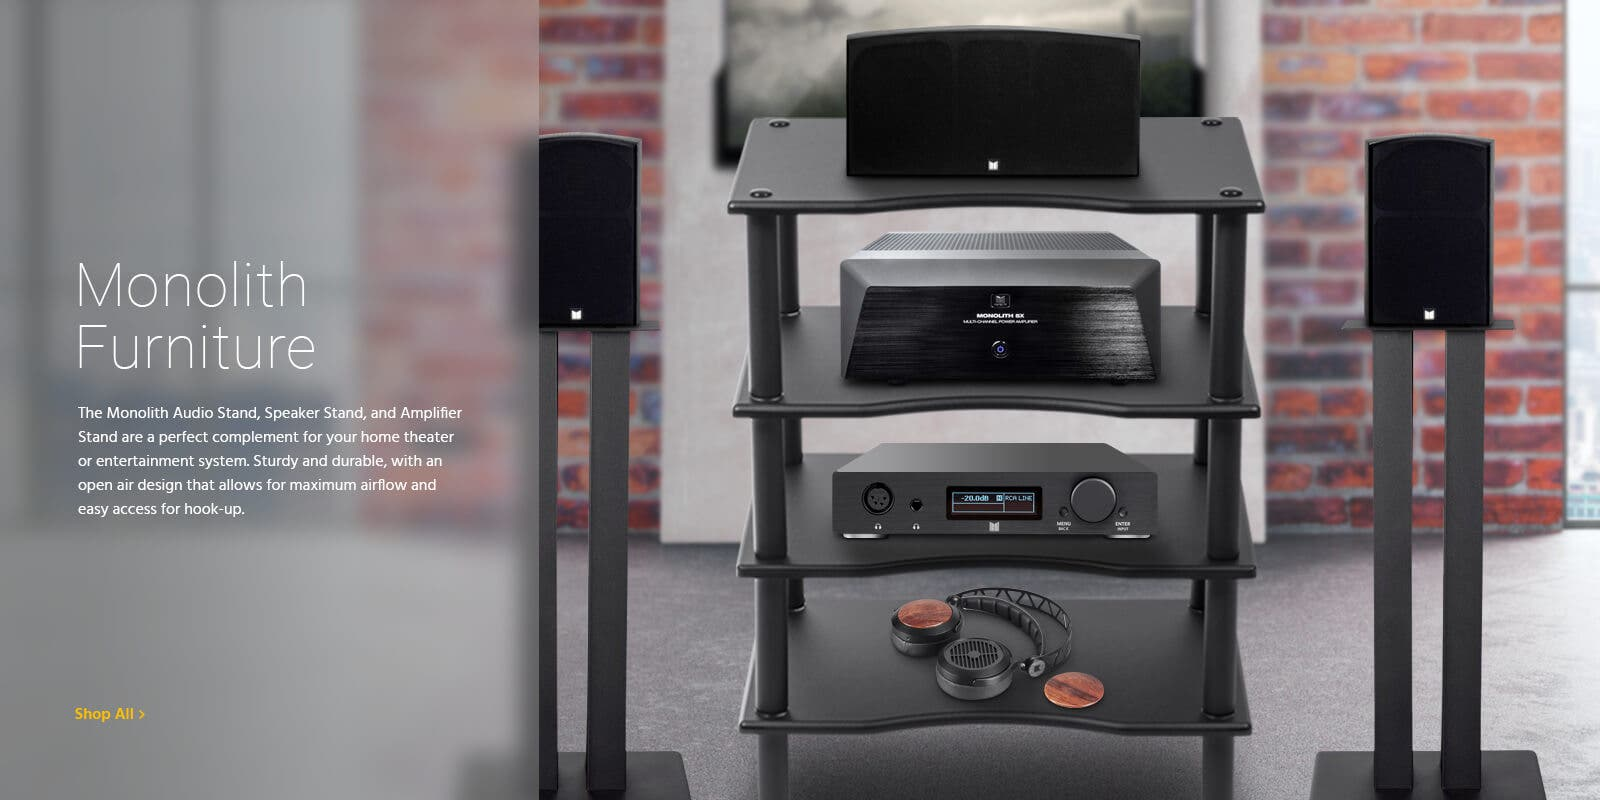 Monoloith Furniture, the monolith audio stand, speaker stand, and amplifier stand are perfect complement for your home theater or entertainment system. Sturdy and durable, with an open air design that allows maximum airflow and easy access for hook-up. Shop All